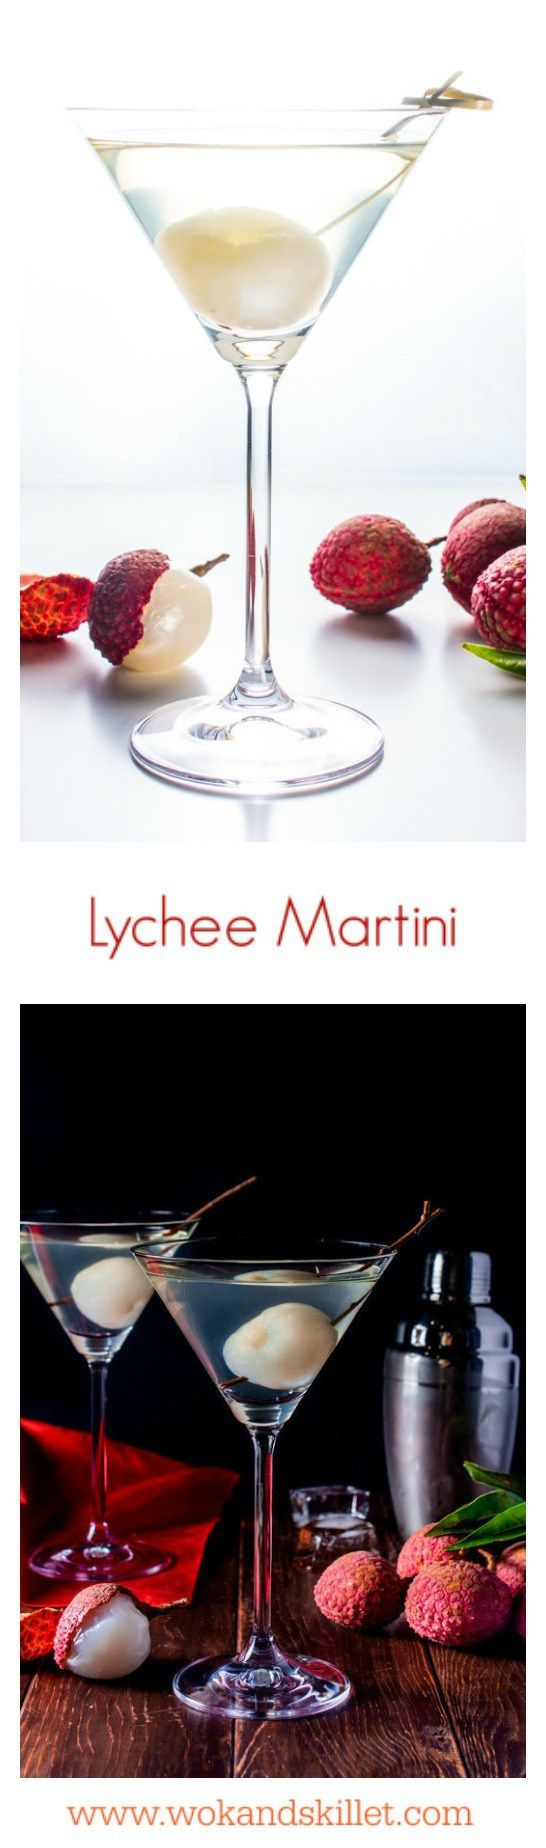 Lychee Martini is a sweet, tropical twist on the traditional martini. Make this simple cocktail anytime year round and as you sip, close your eyes and let your imagination take you to warm sandy beaches with crystal clear waters.